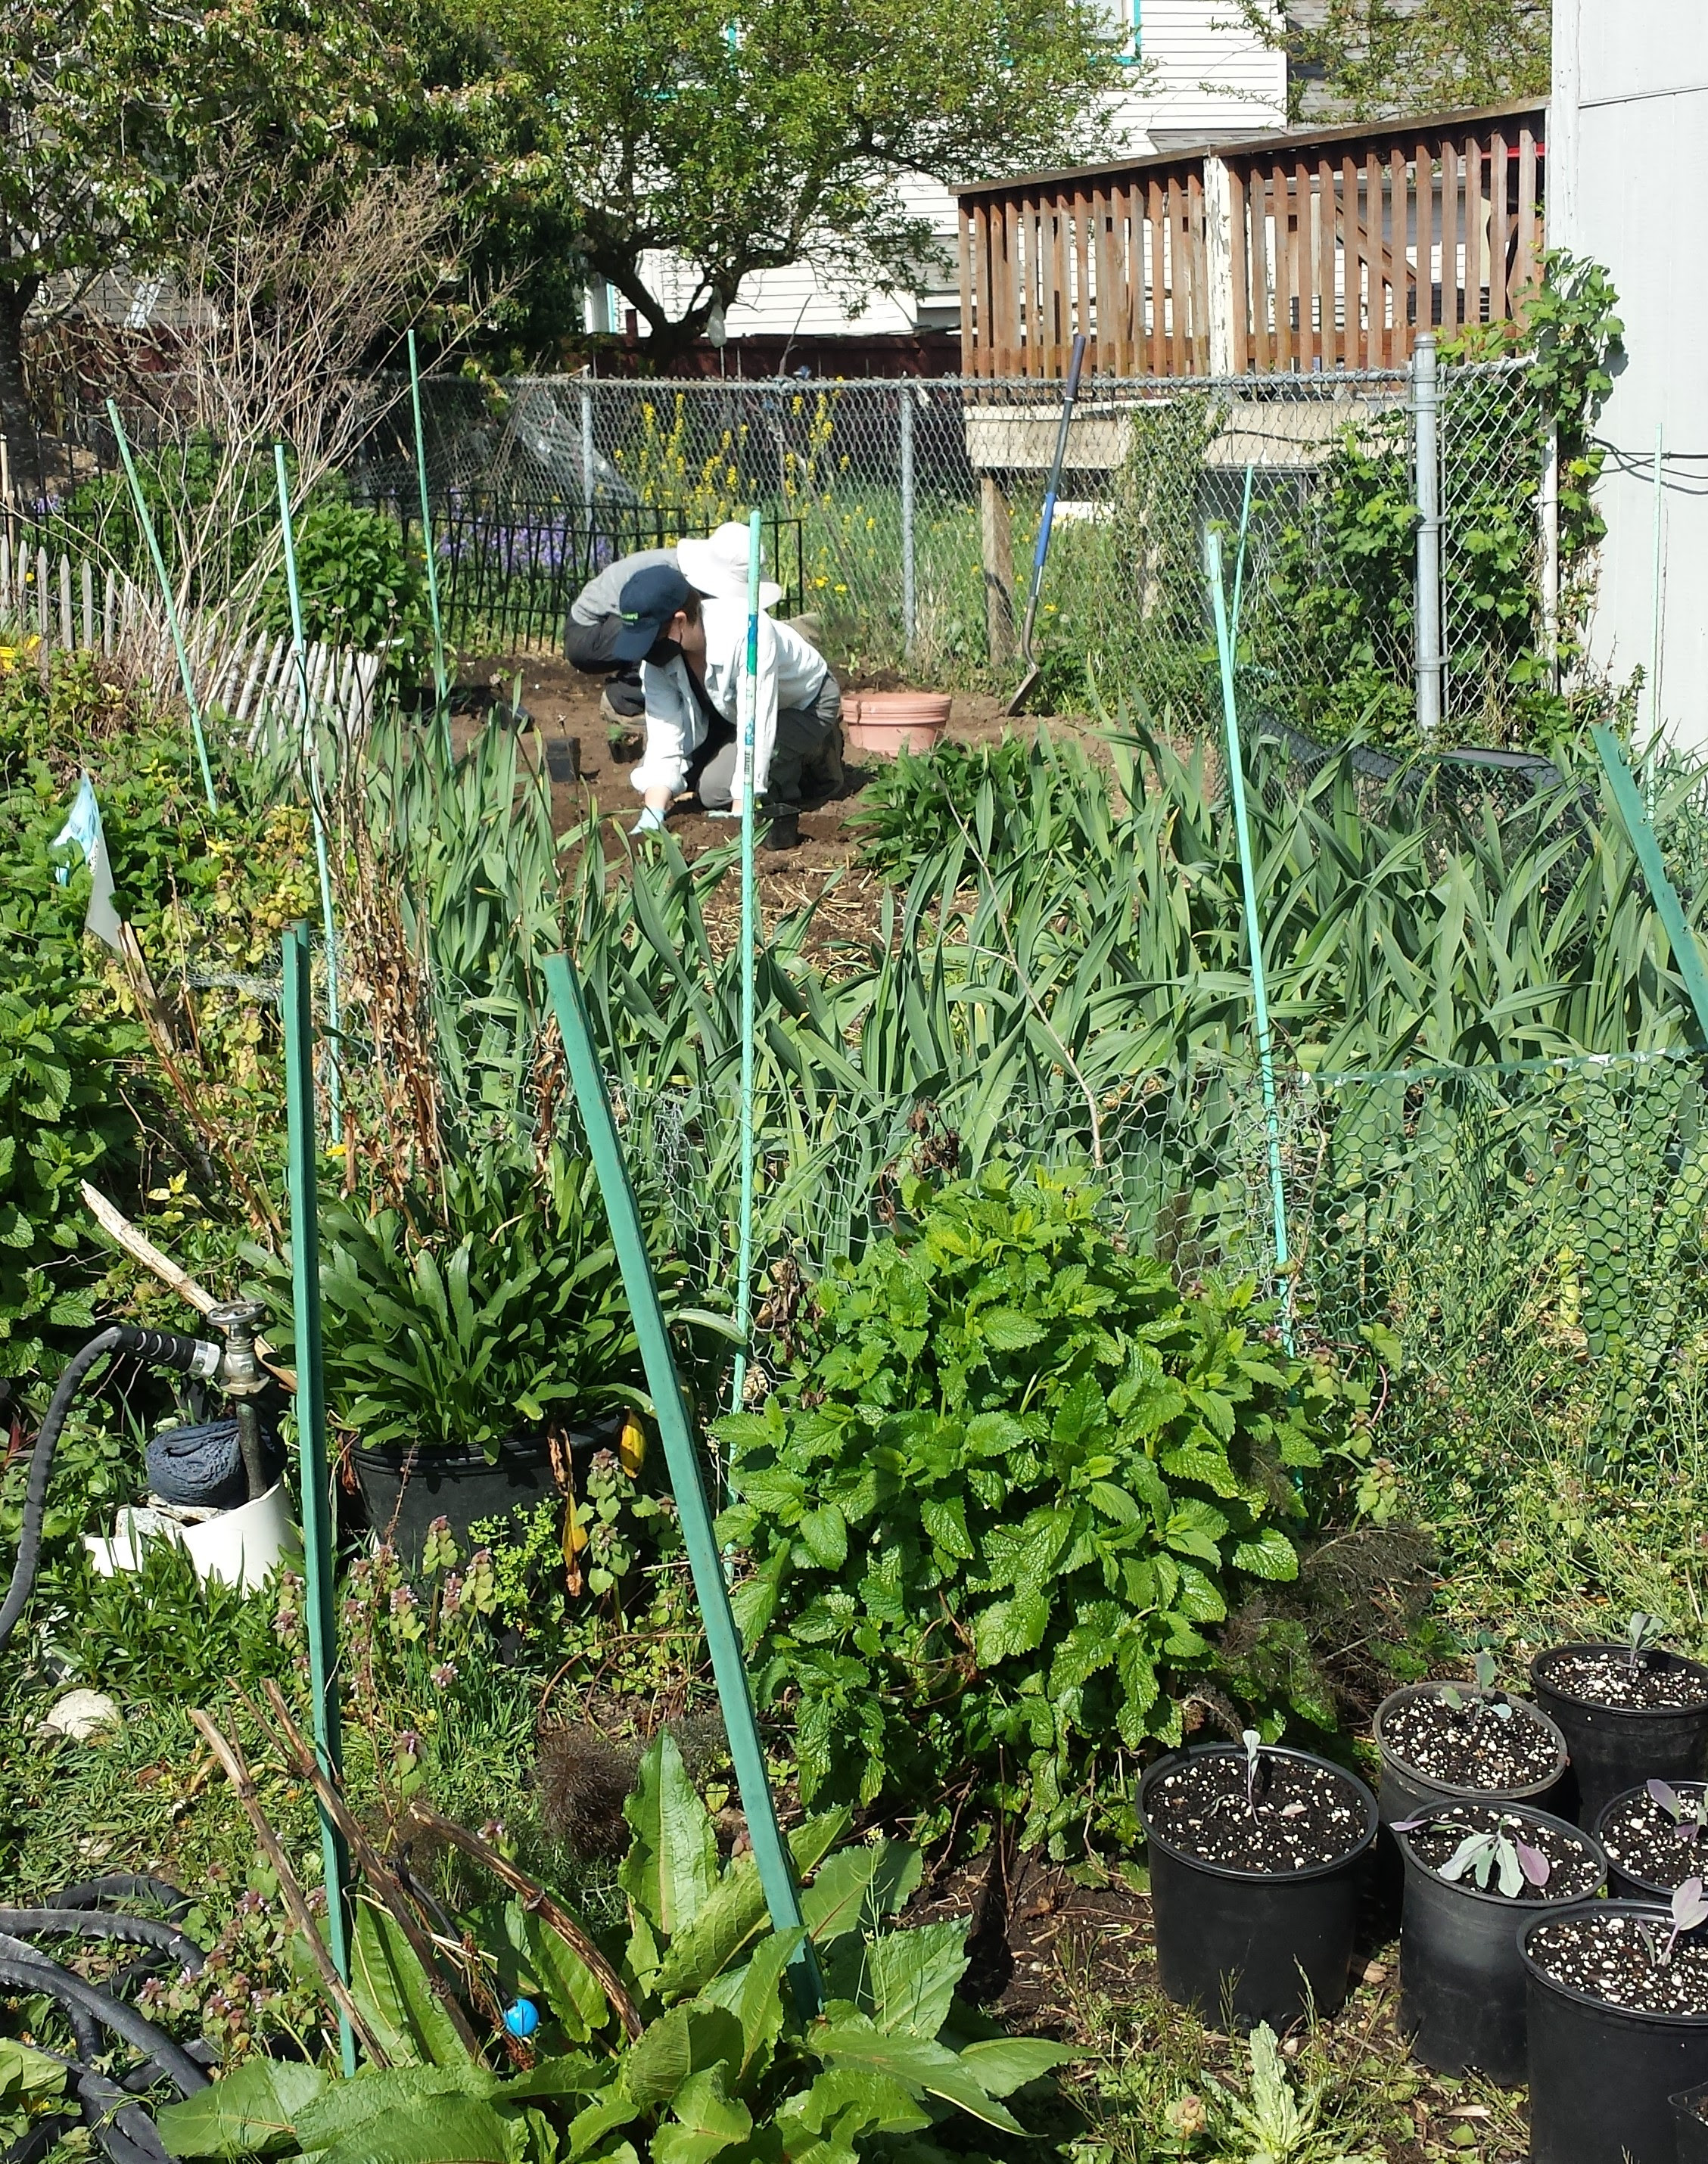 In the background, a volunteer is kneeling on the ground working the soil with their hands. In the foreground, there are many green plants on the farm that are different heights, shapes, and shades of green..